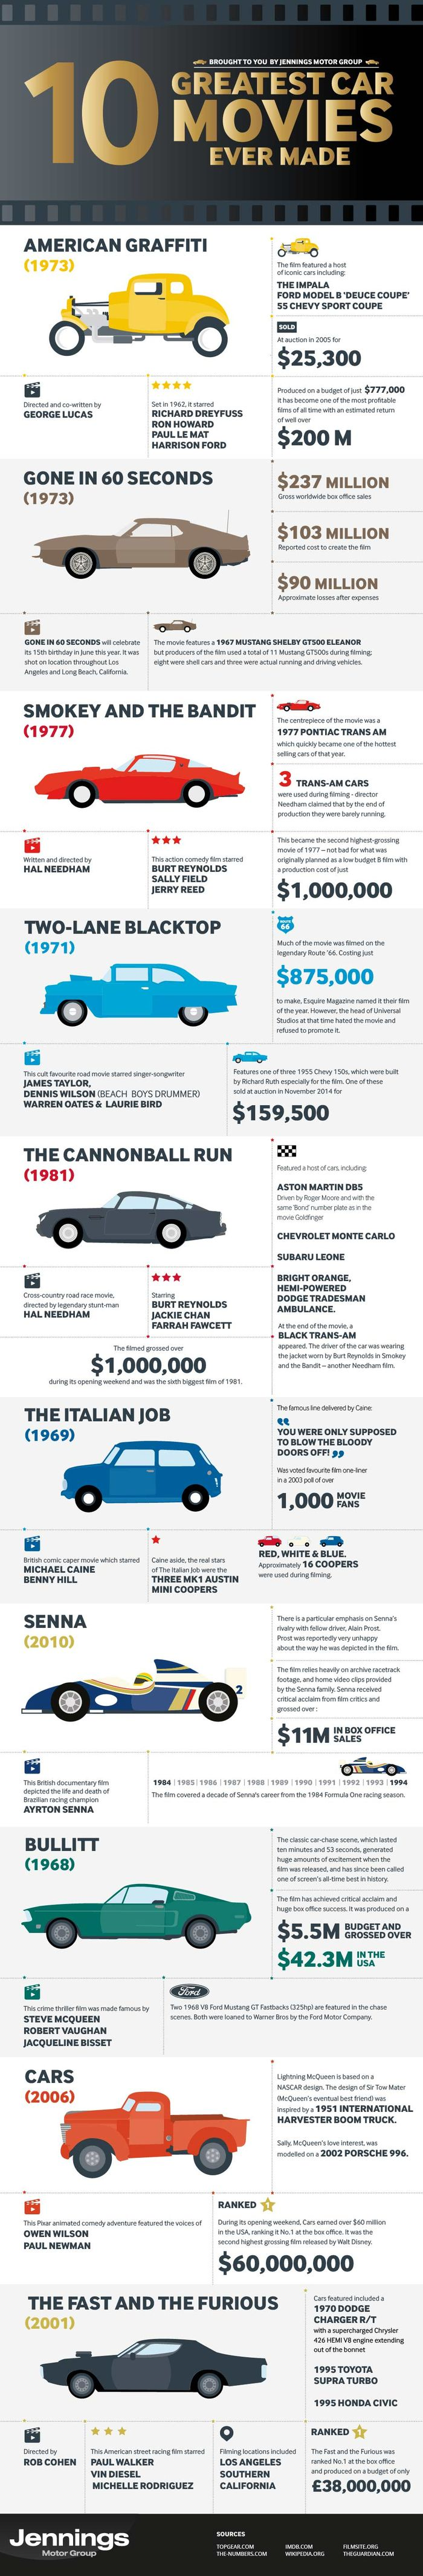 This Awesome Infographic Details The Coolest Car Movies Ever Made